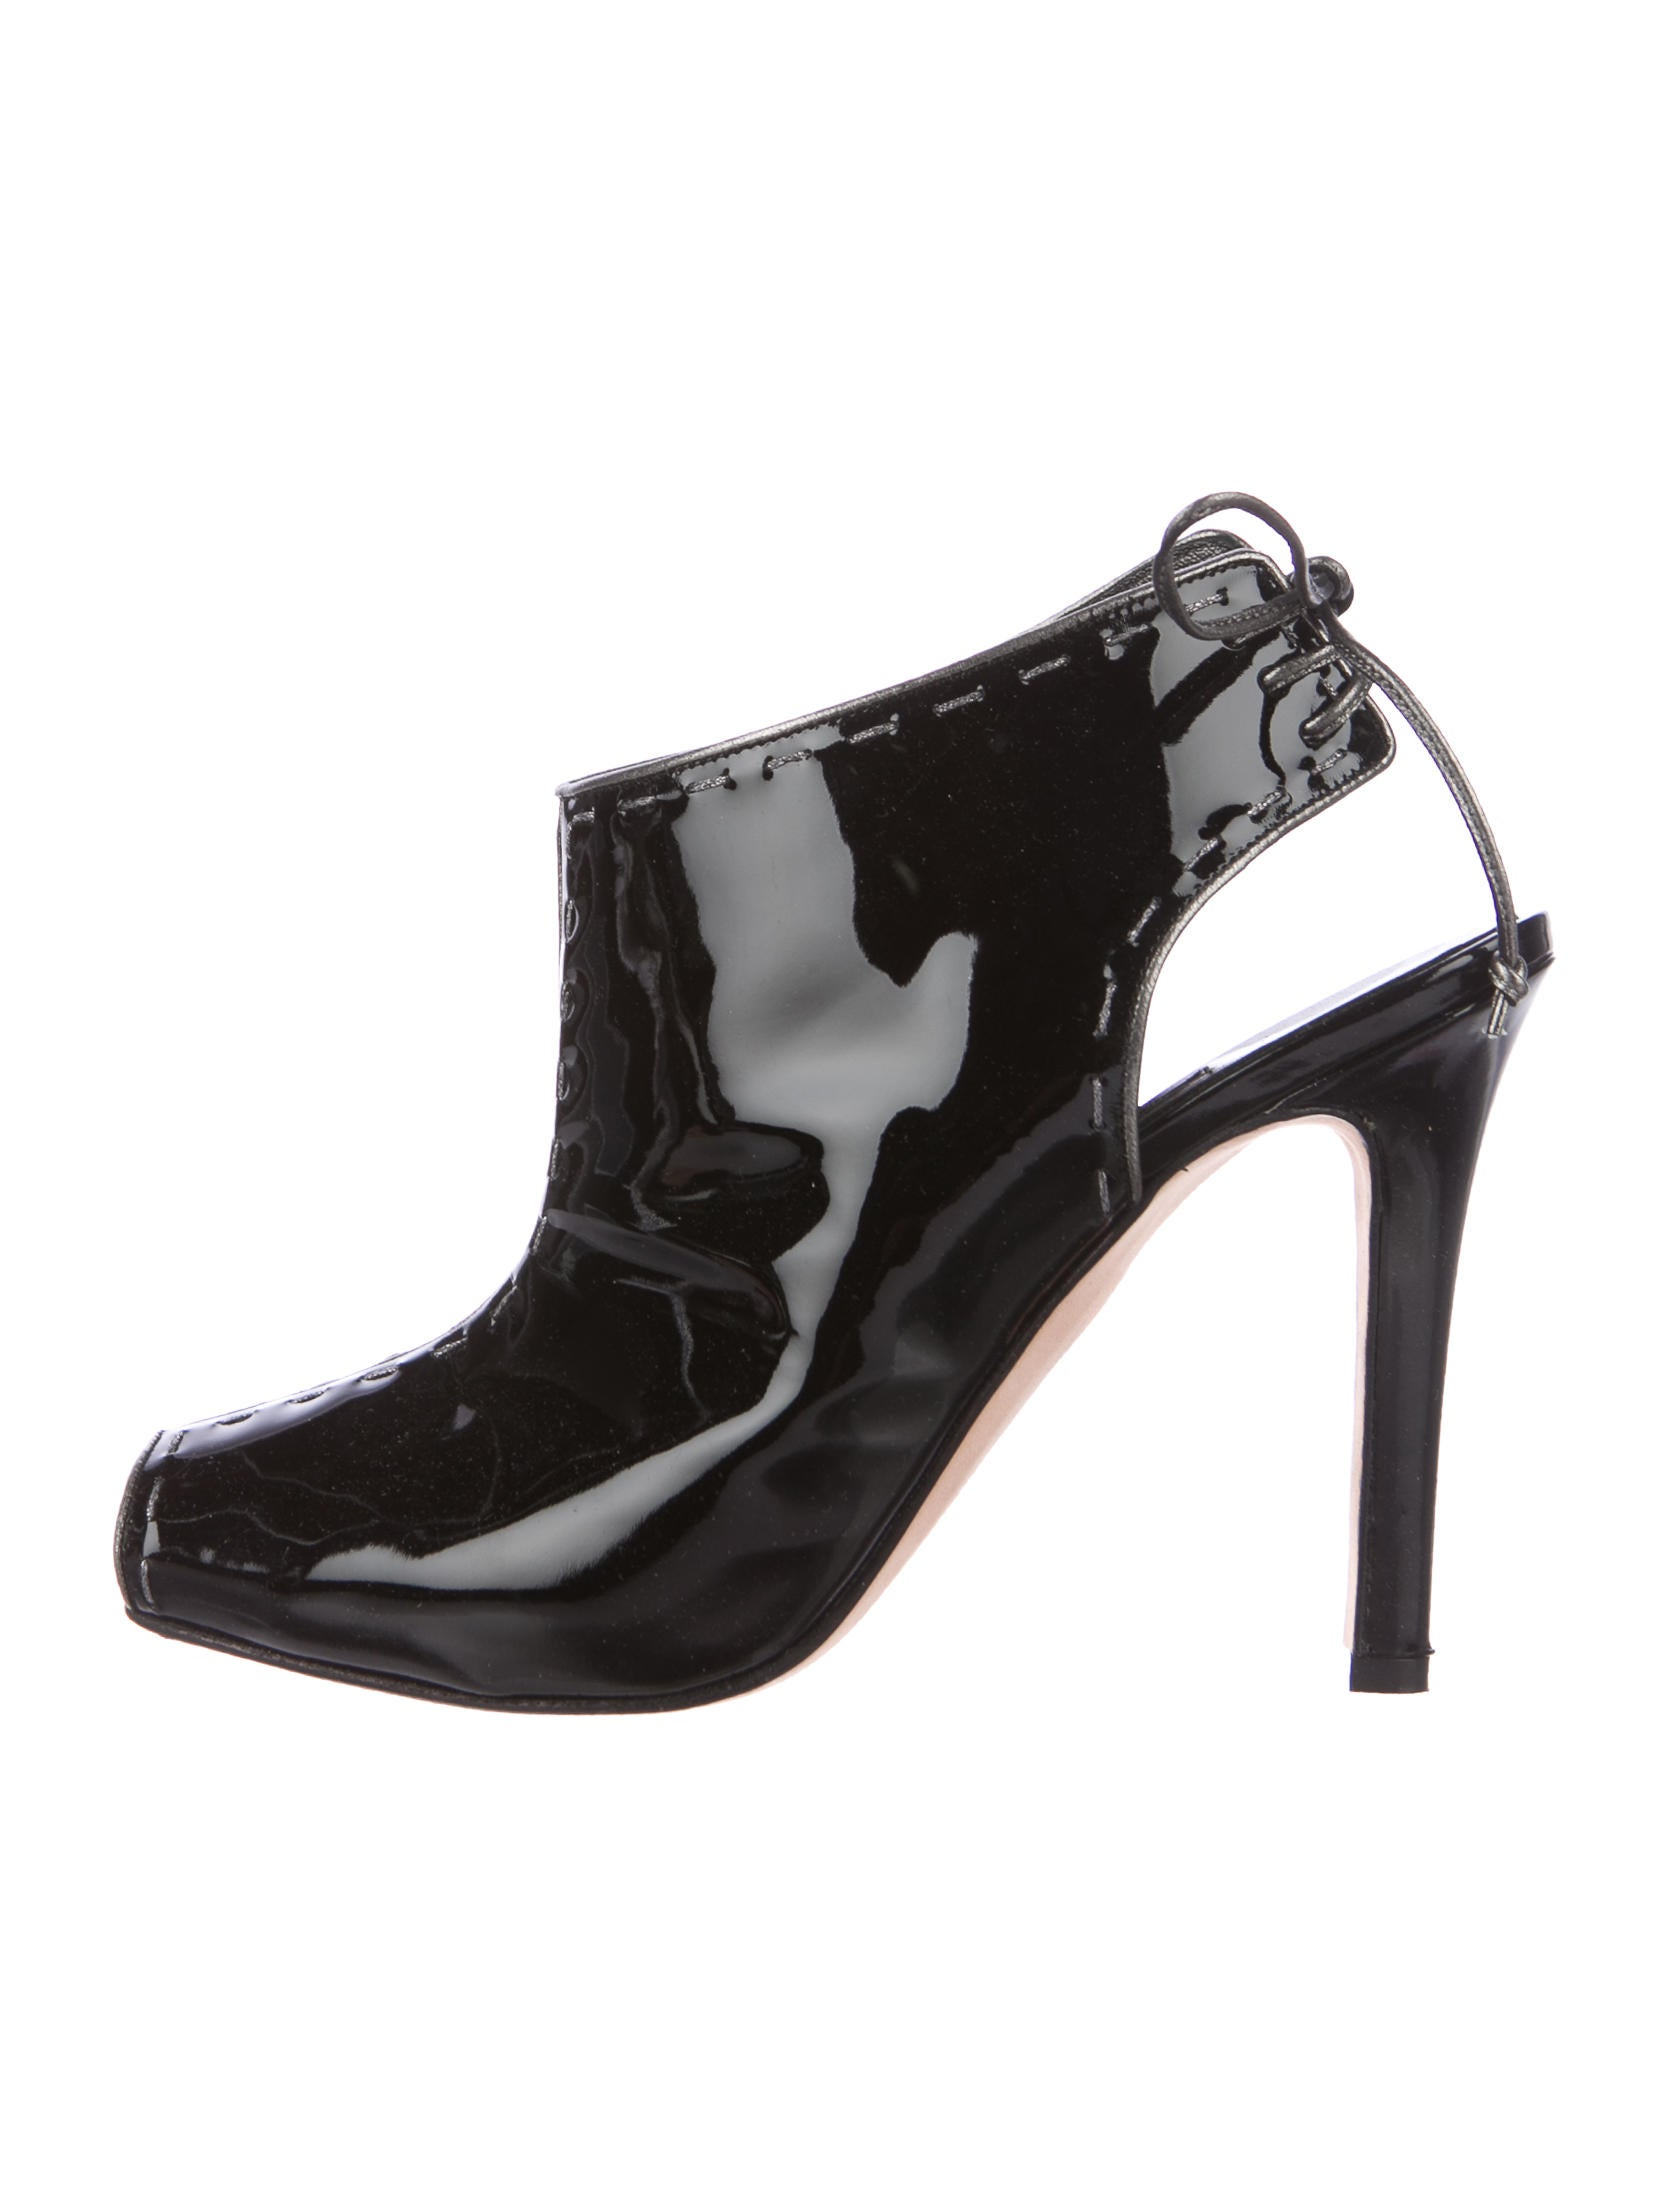 These knee high patent leather boots lace up the front. They have a 2